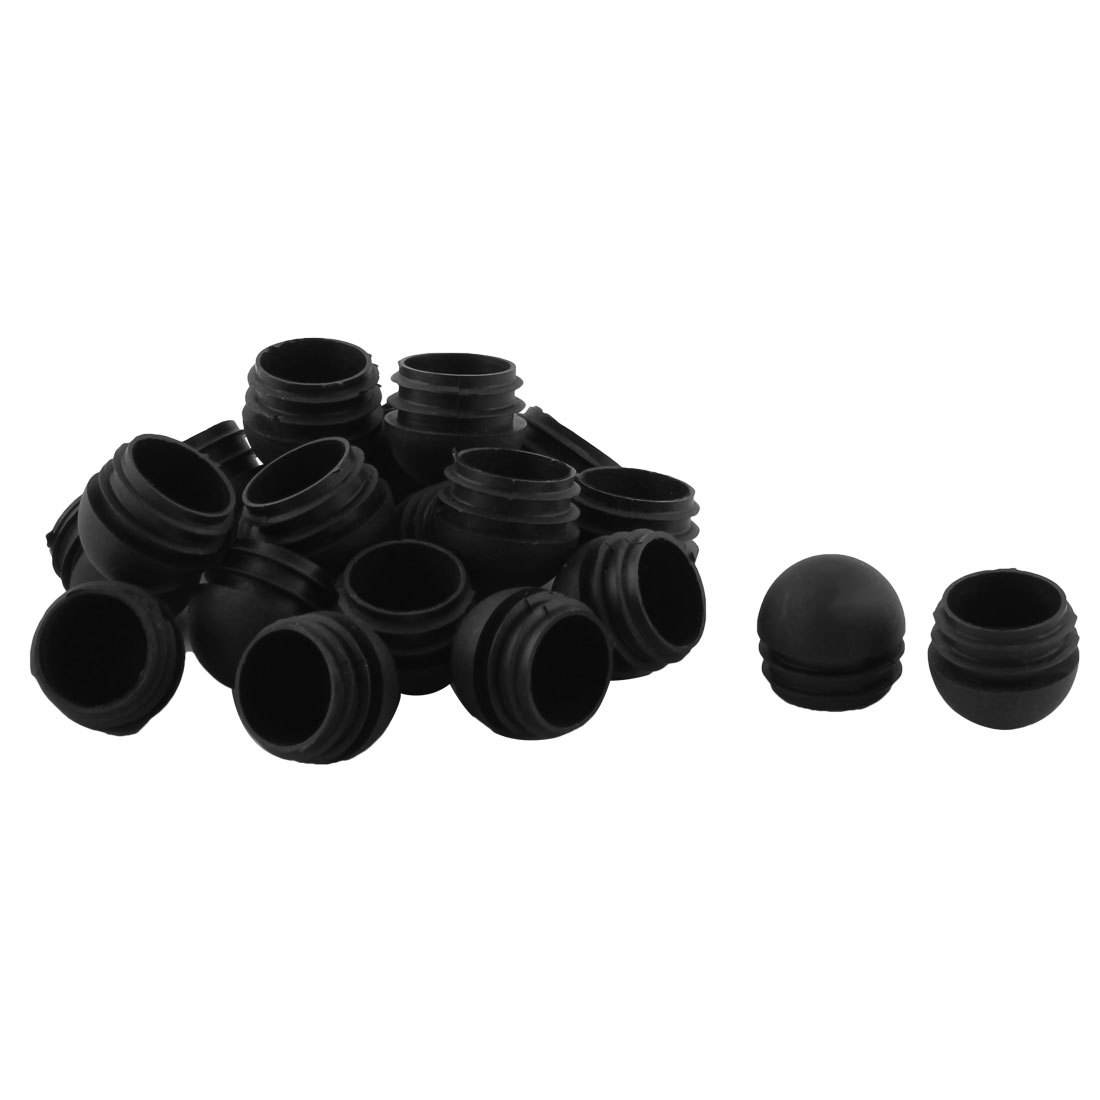 Office Home Plastic Round Shaped Furniture Table Chair Leg Foot Tube Insert Black 20 Pcs